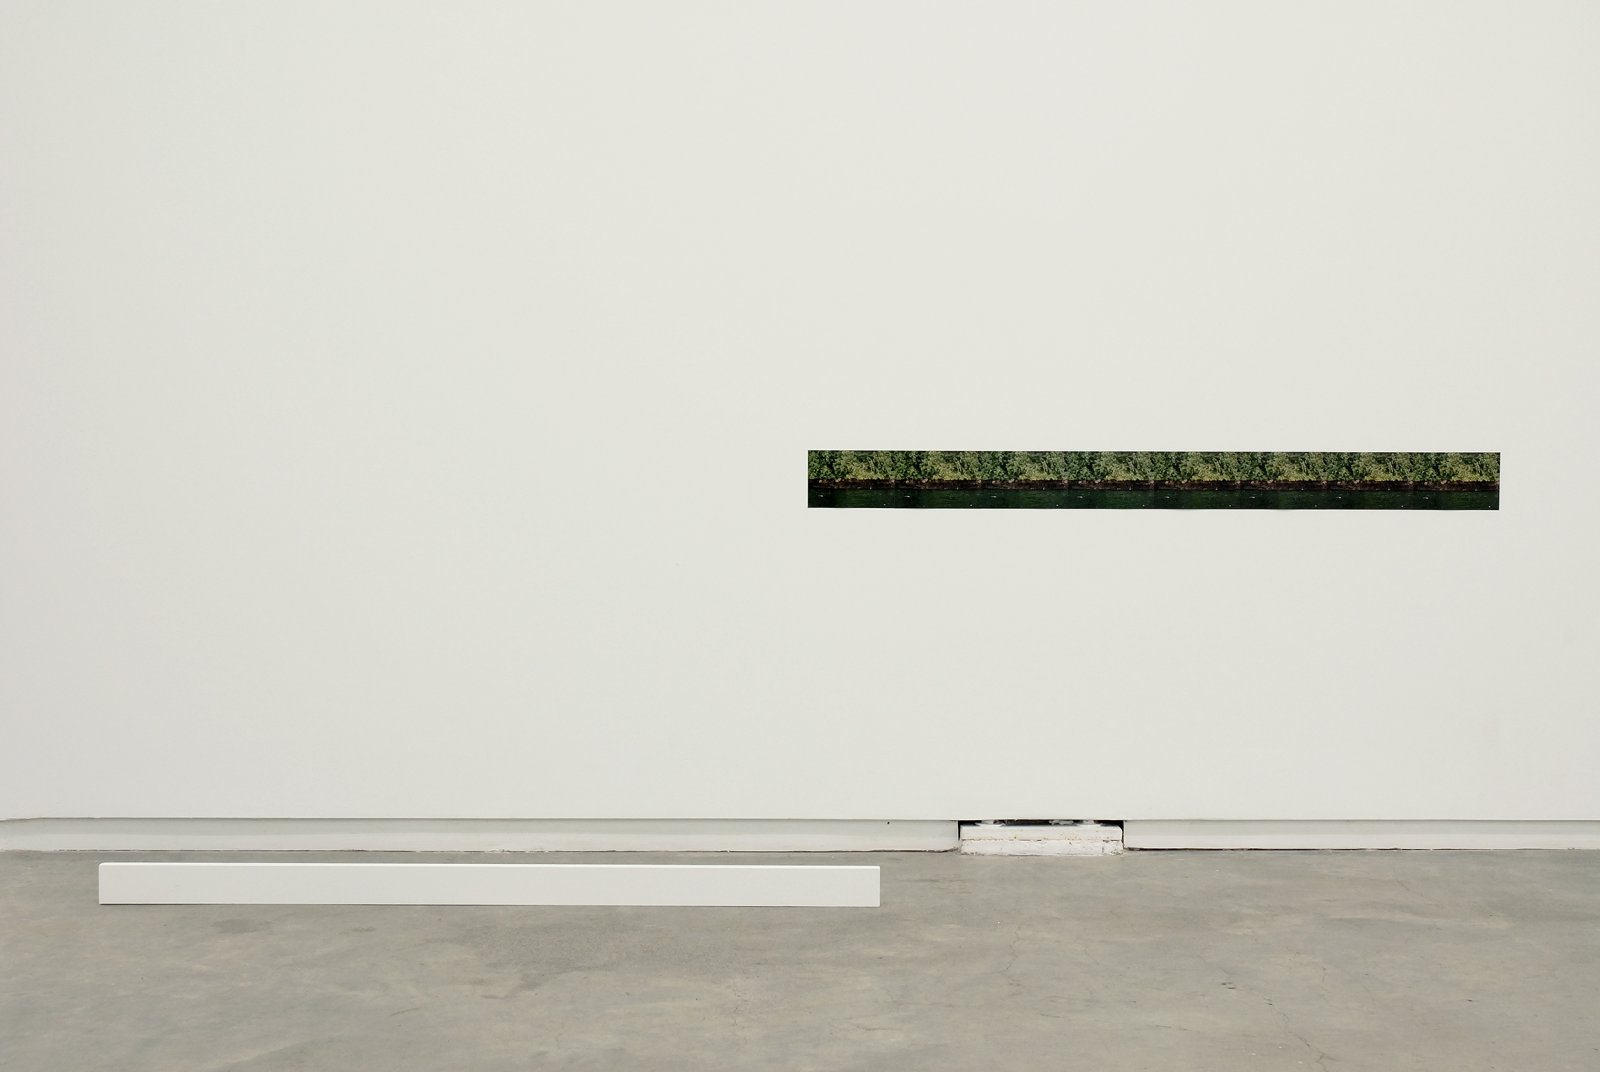 ​Arabella Campbell, The Reveal Works, 2007, c-prints and sculpture, dimensions variable by